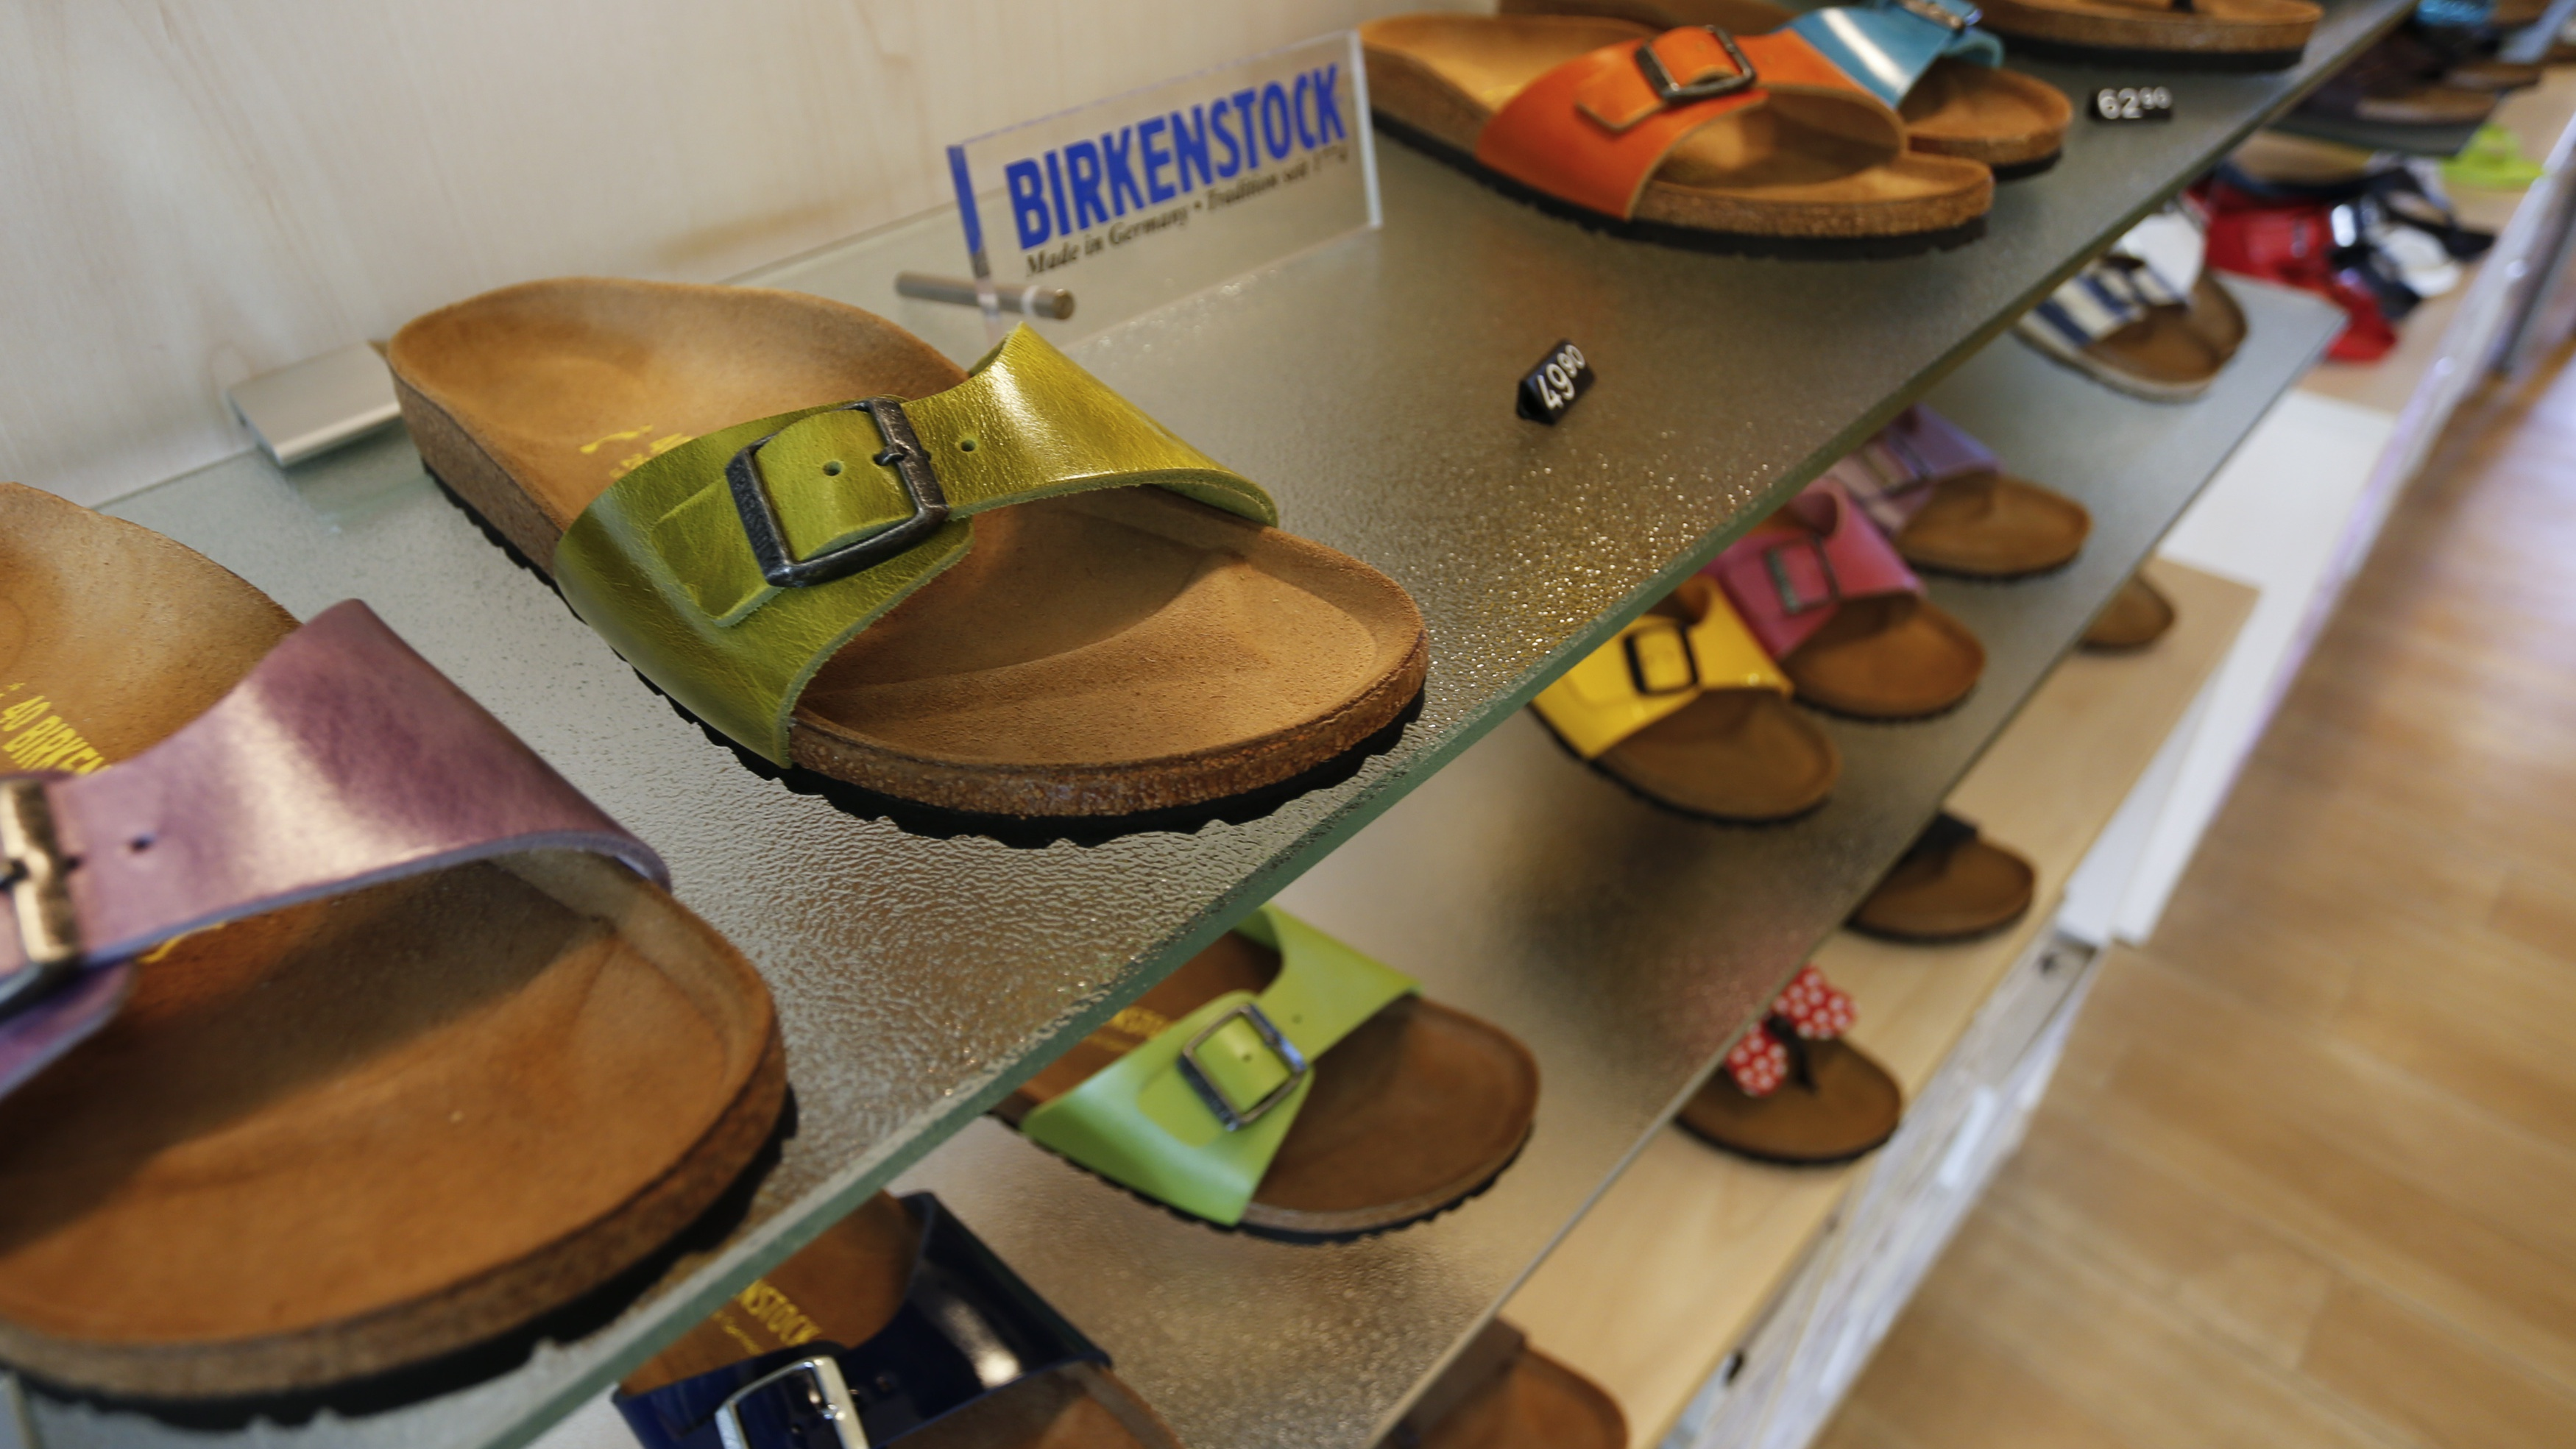 89c6d921f703c Birkenstock says Amazon is rife with counterfeits: How to avoid ...